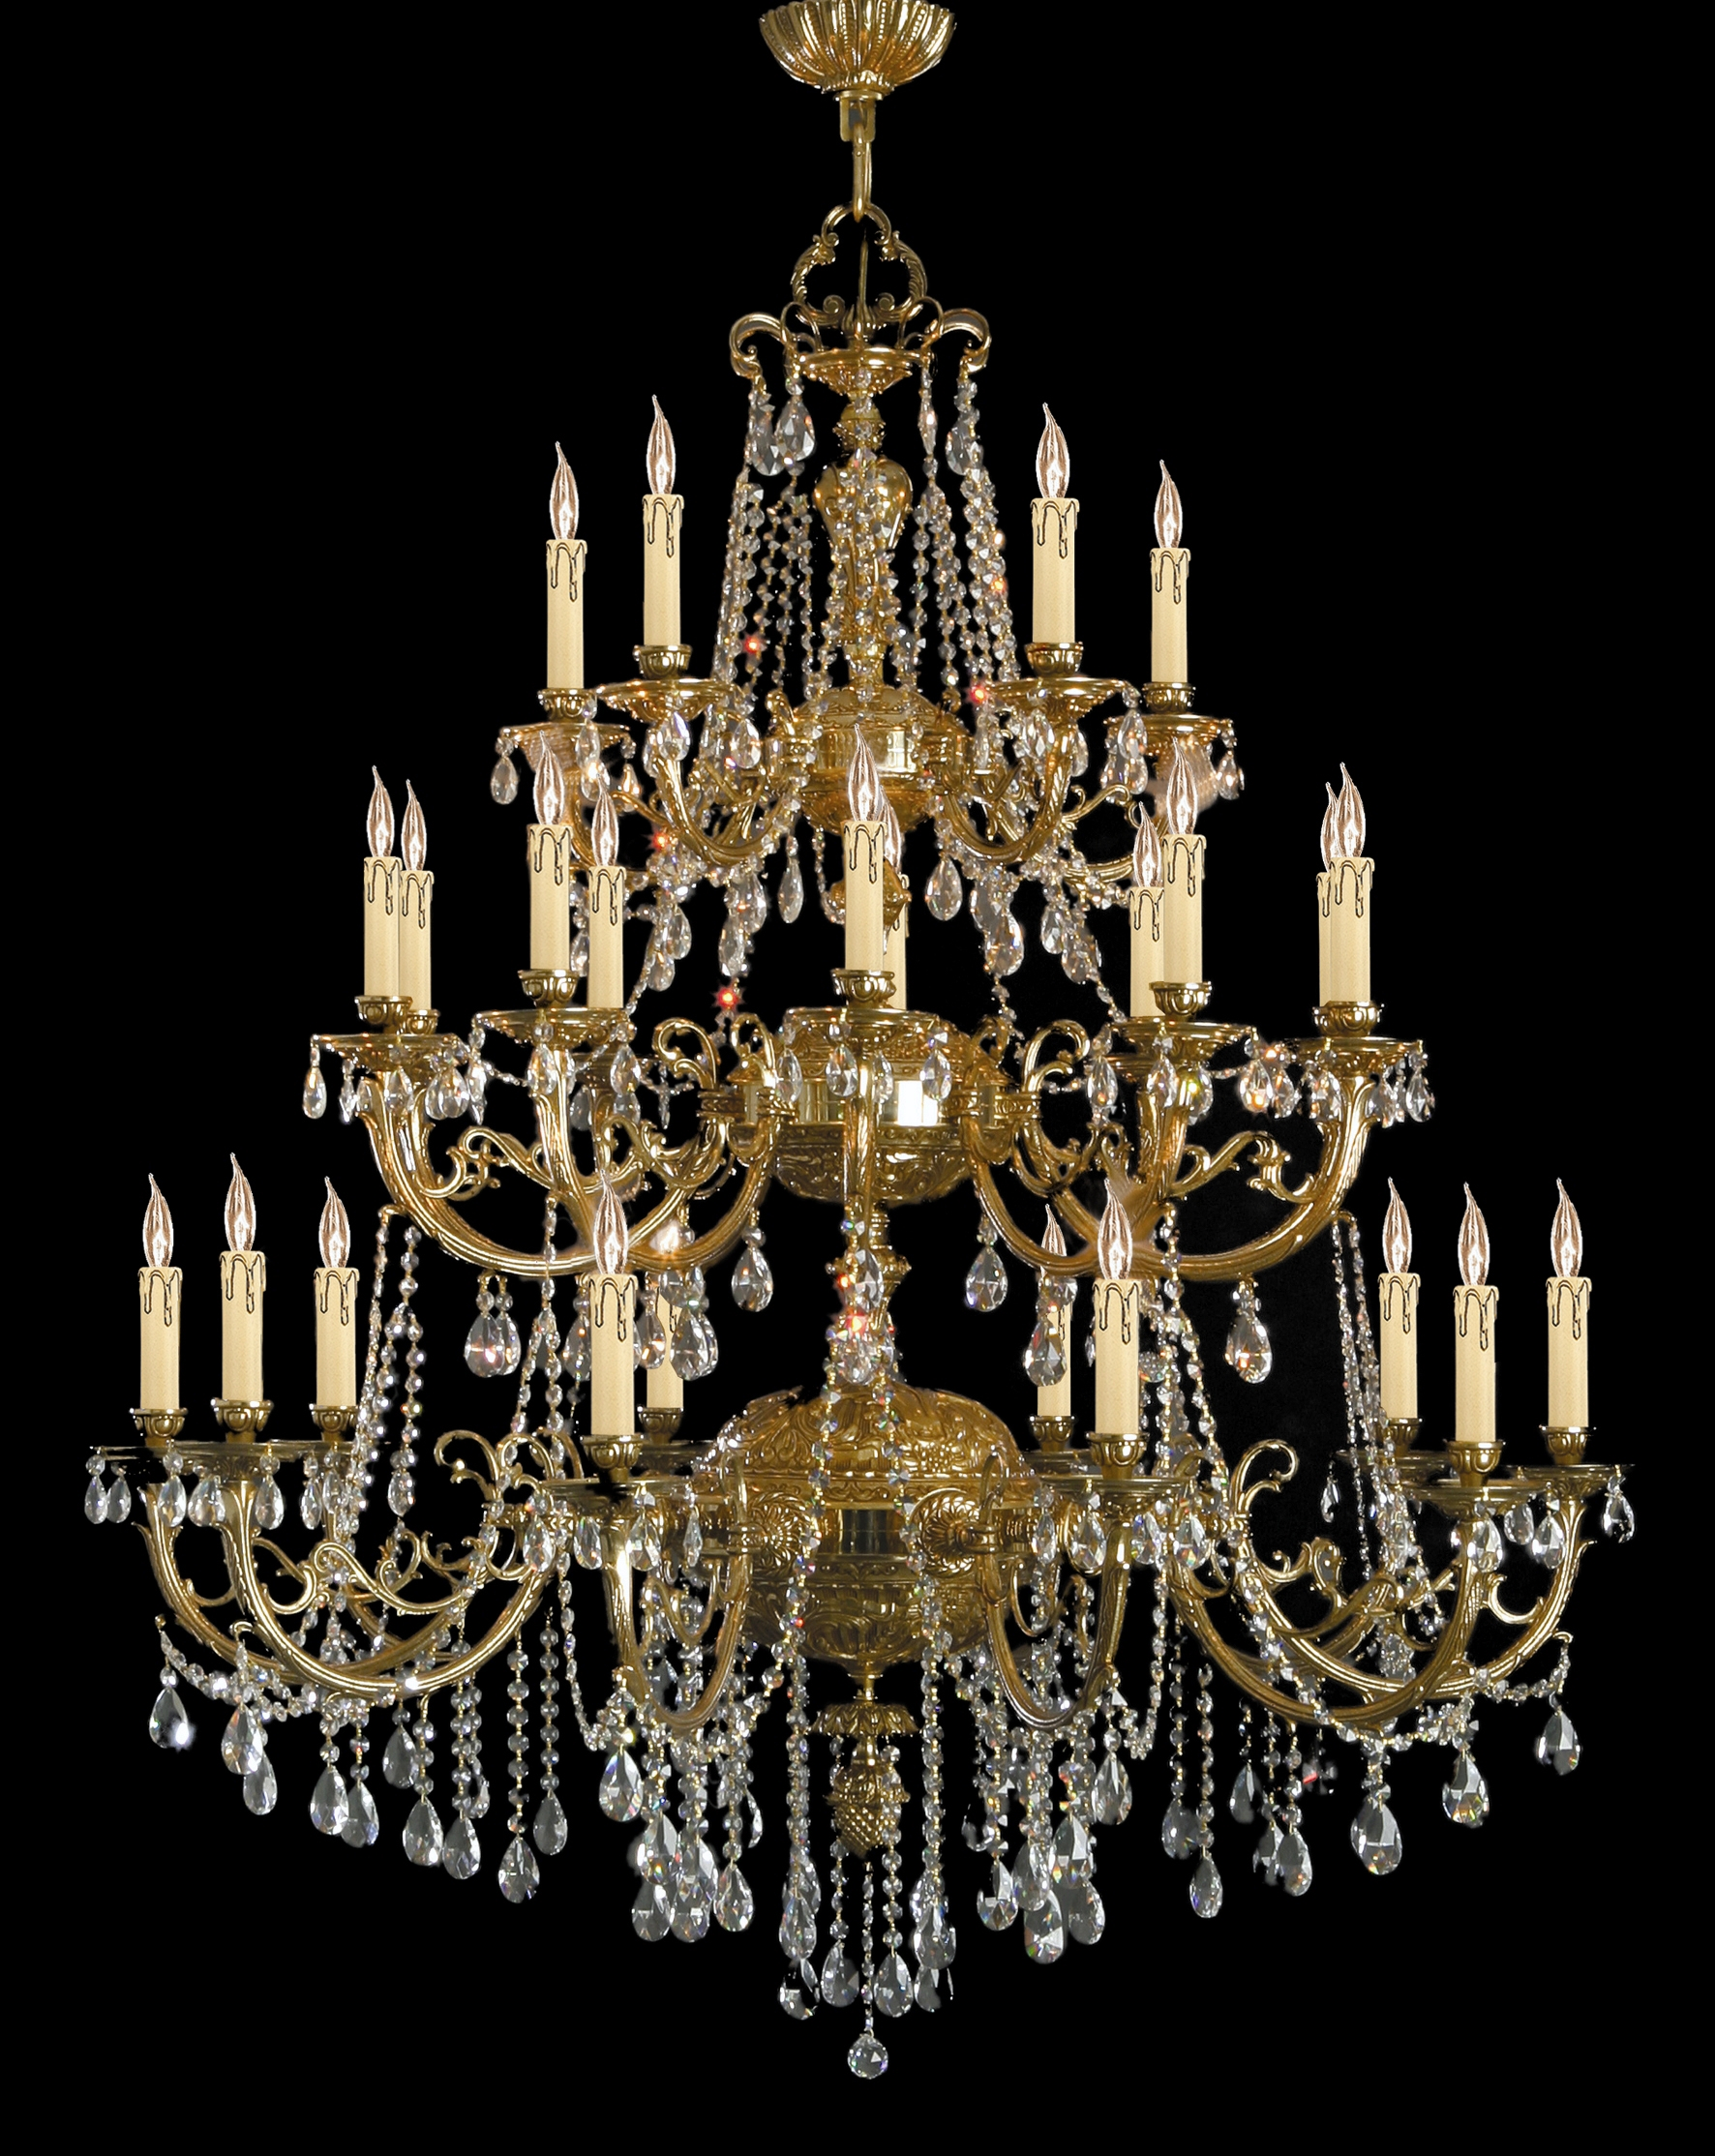 Largelighting Crystal Chandeliers Inside Brass And Crystal Chandeliers (Image 12 of 15)